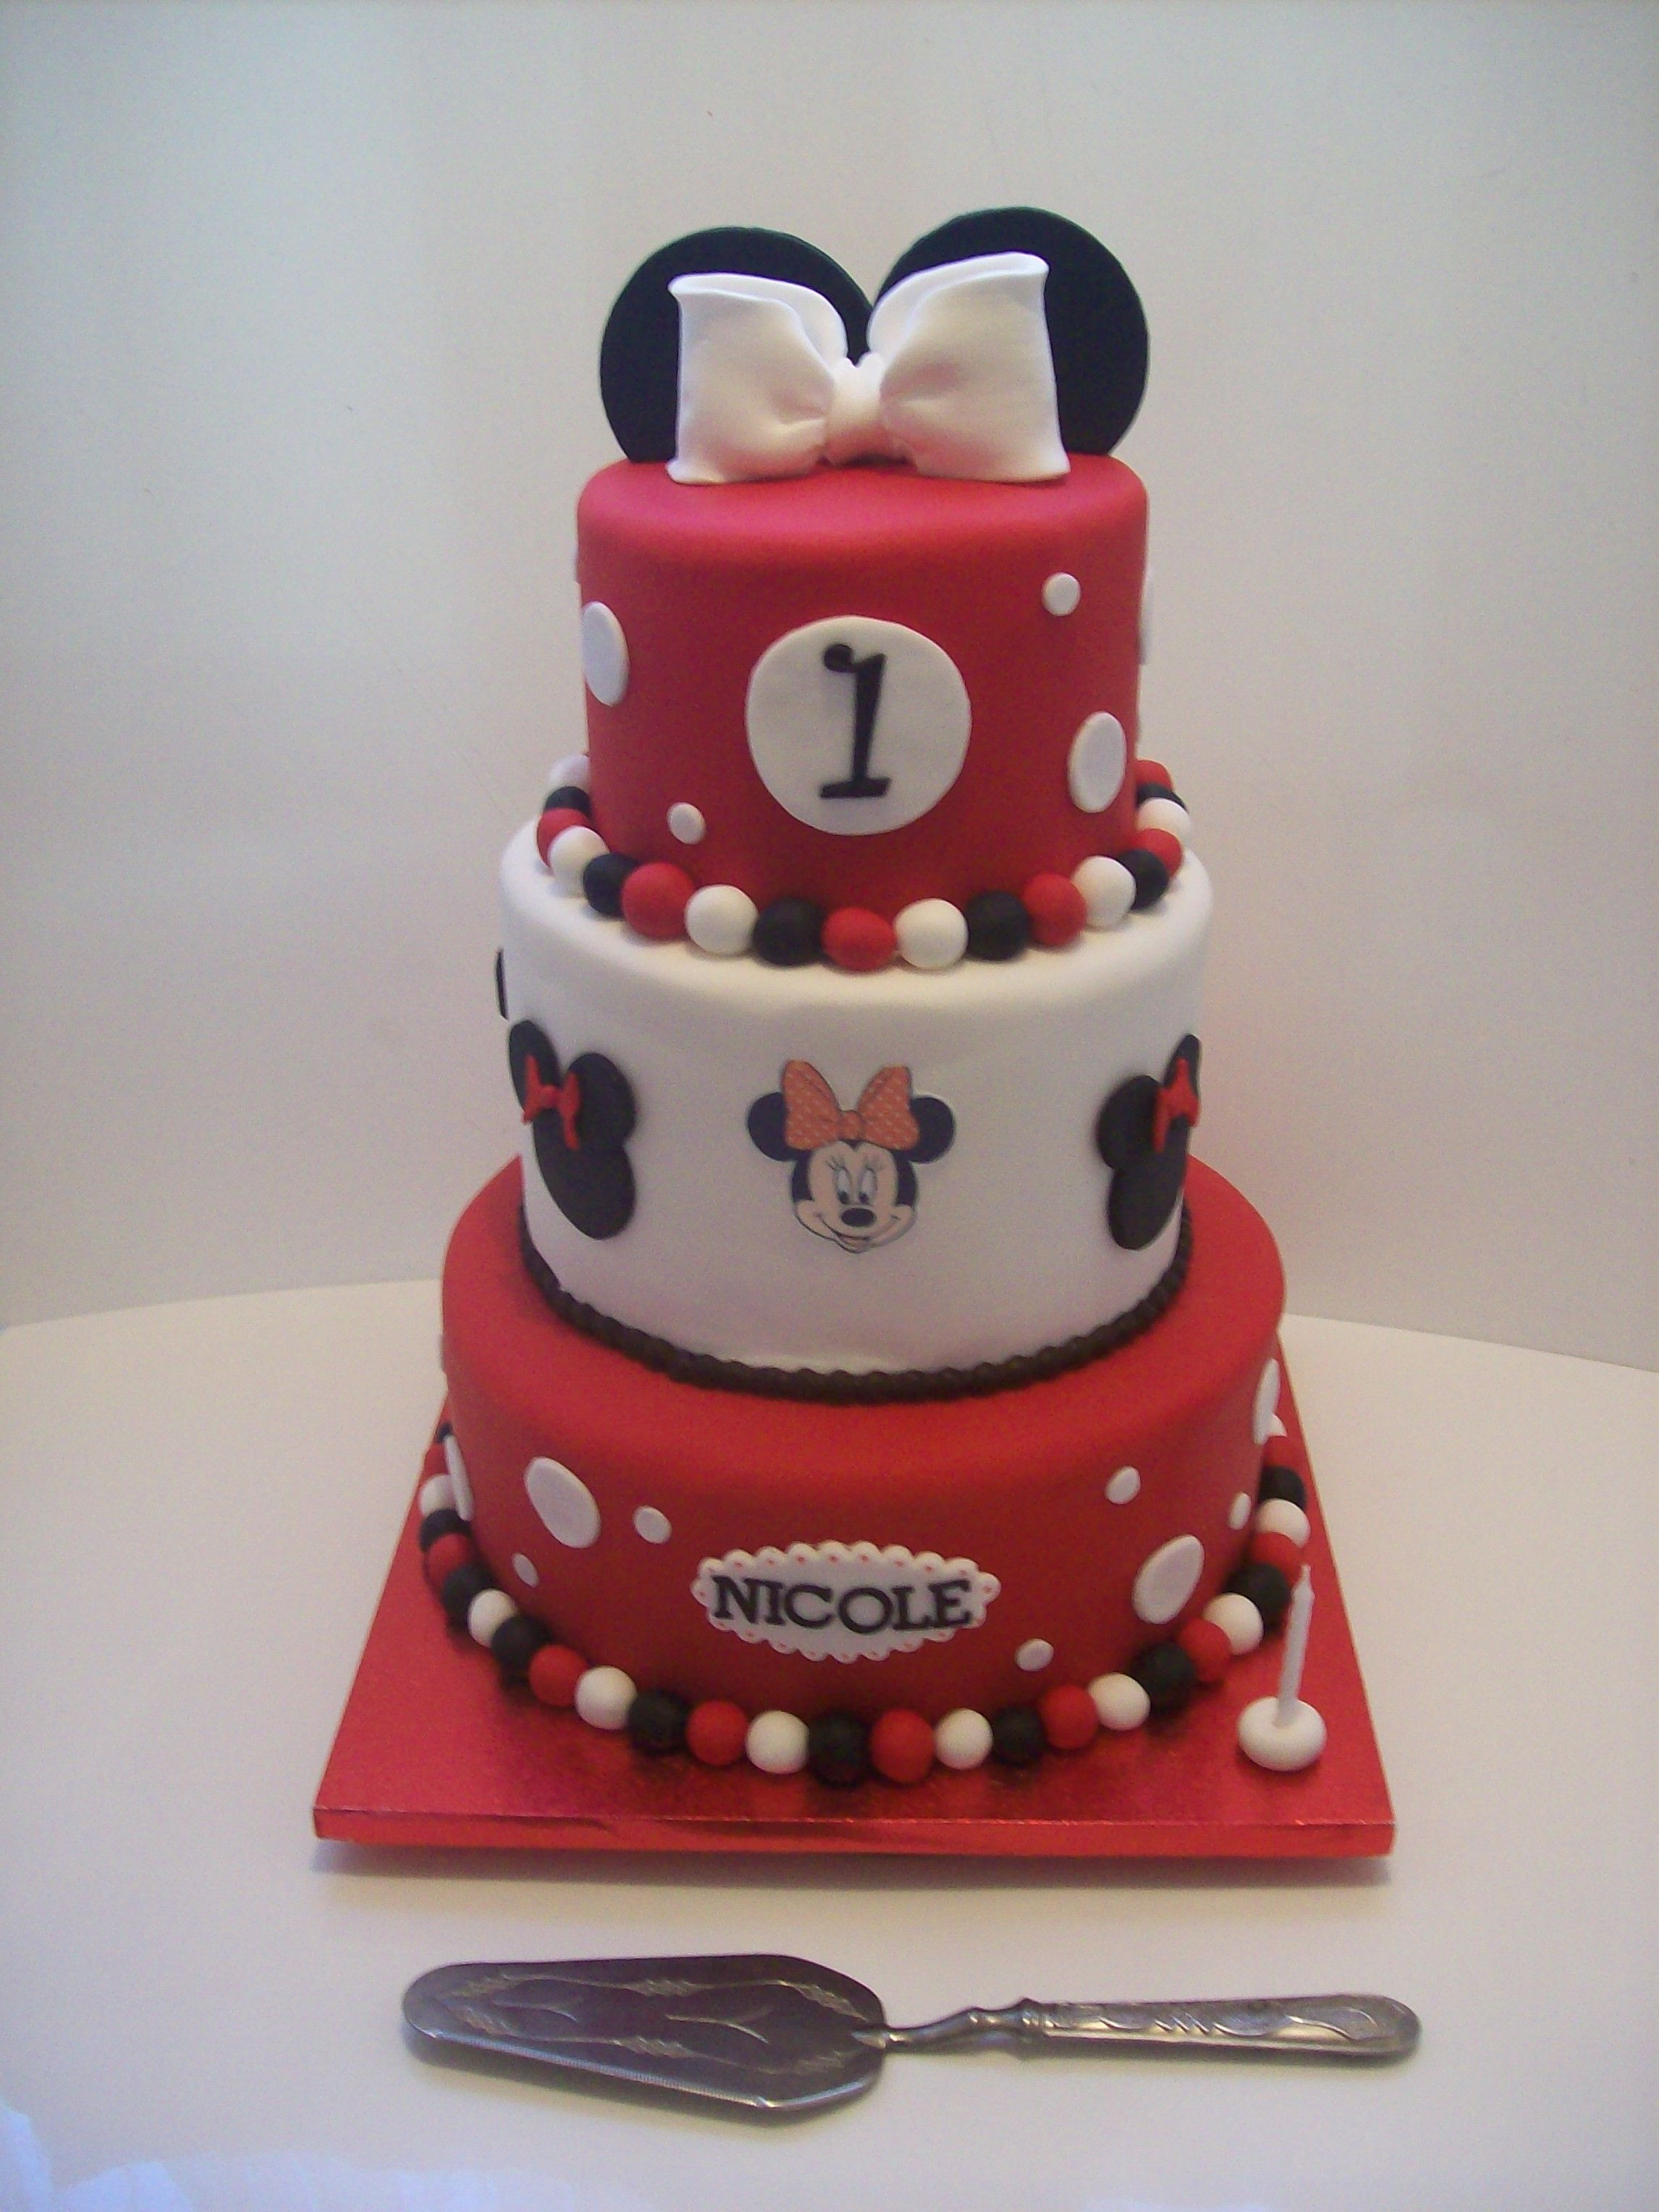 Minnie Mouse 3 tier cake Auckland 550 caters for 120 coffee serves